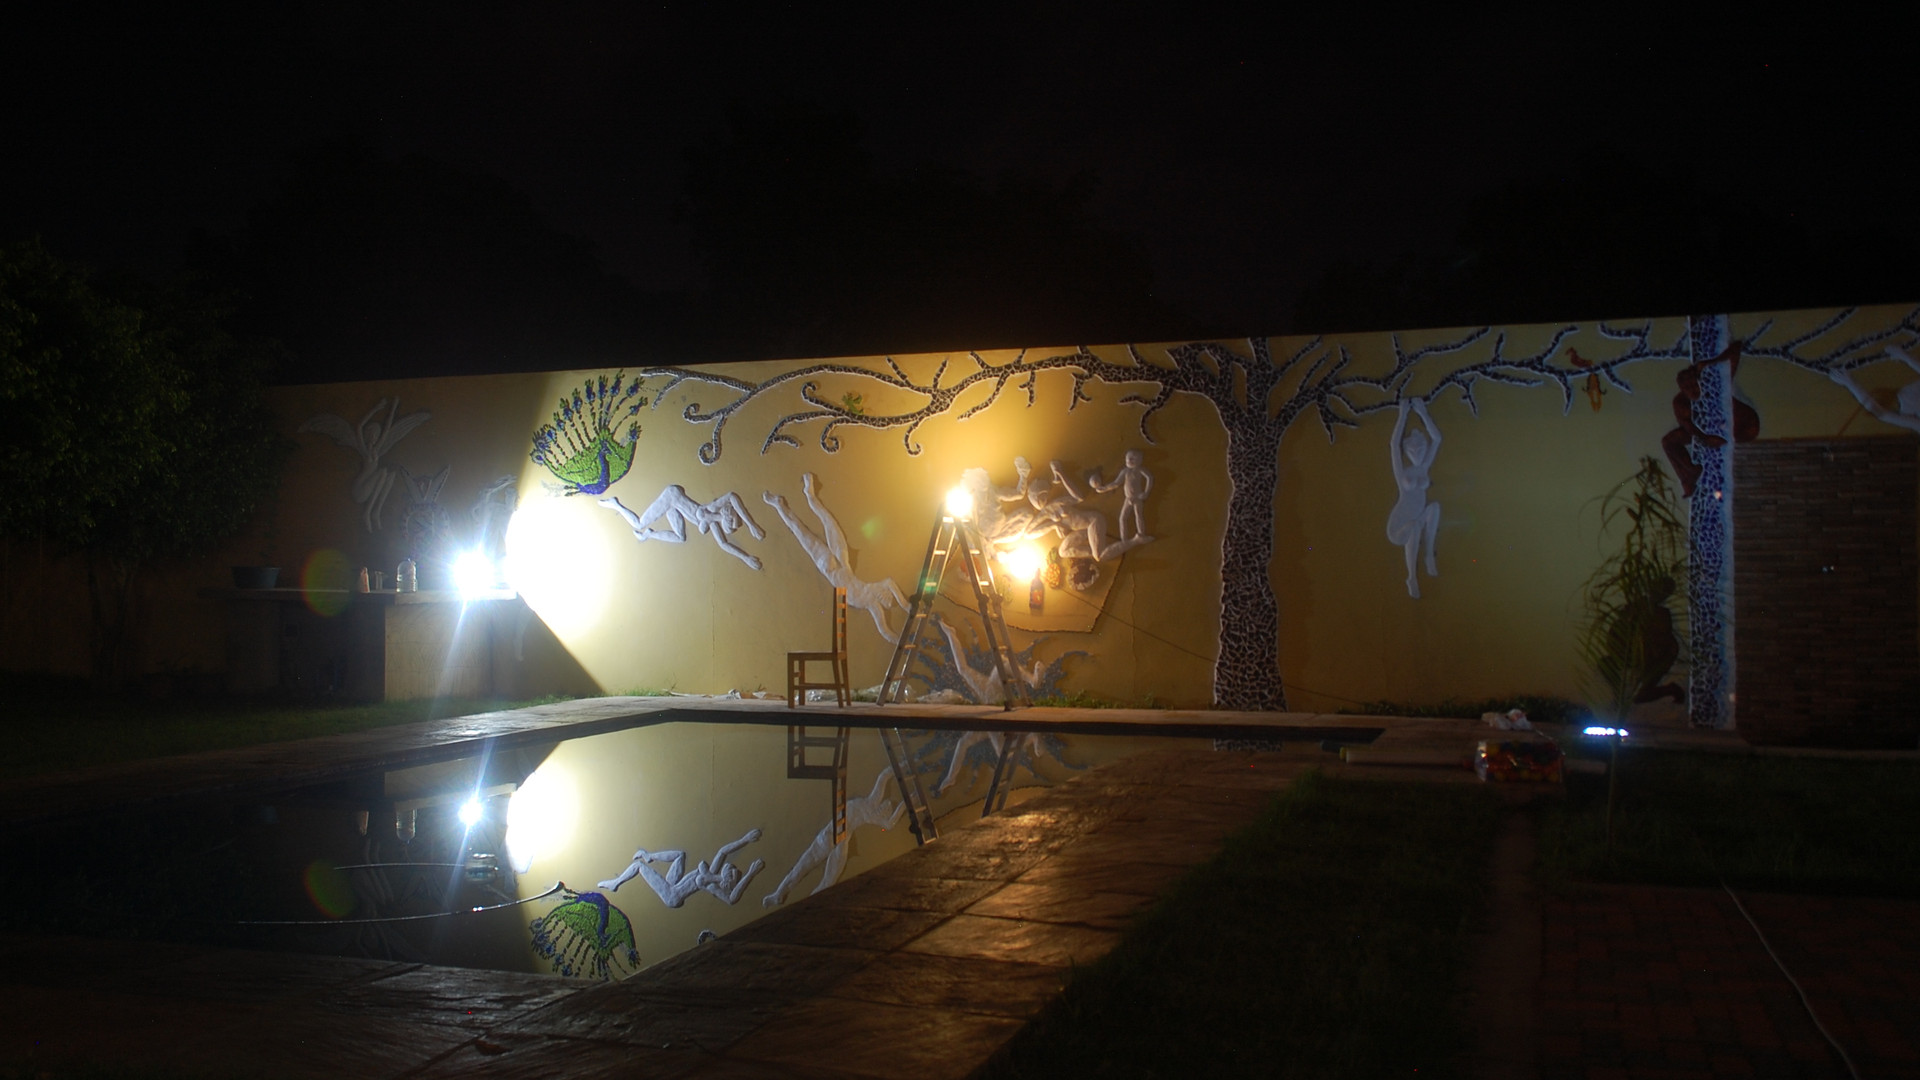 unpainted mural by night.jpg